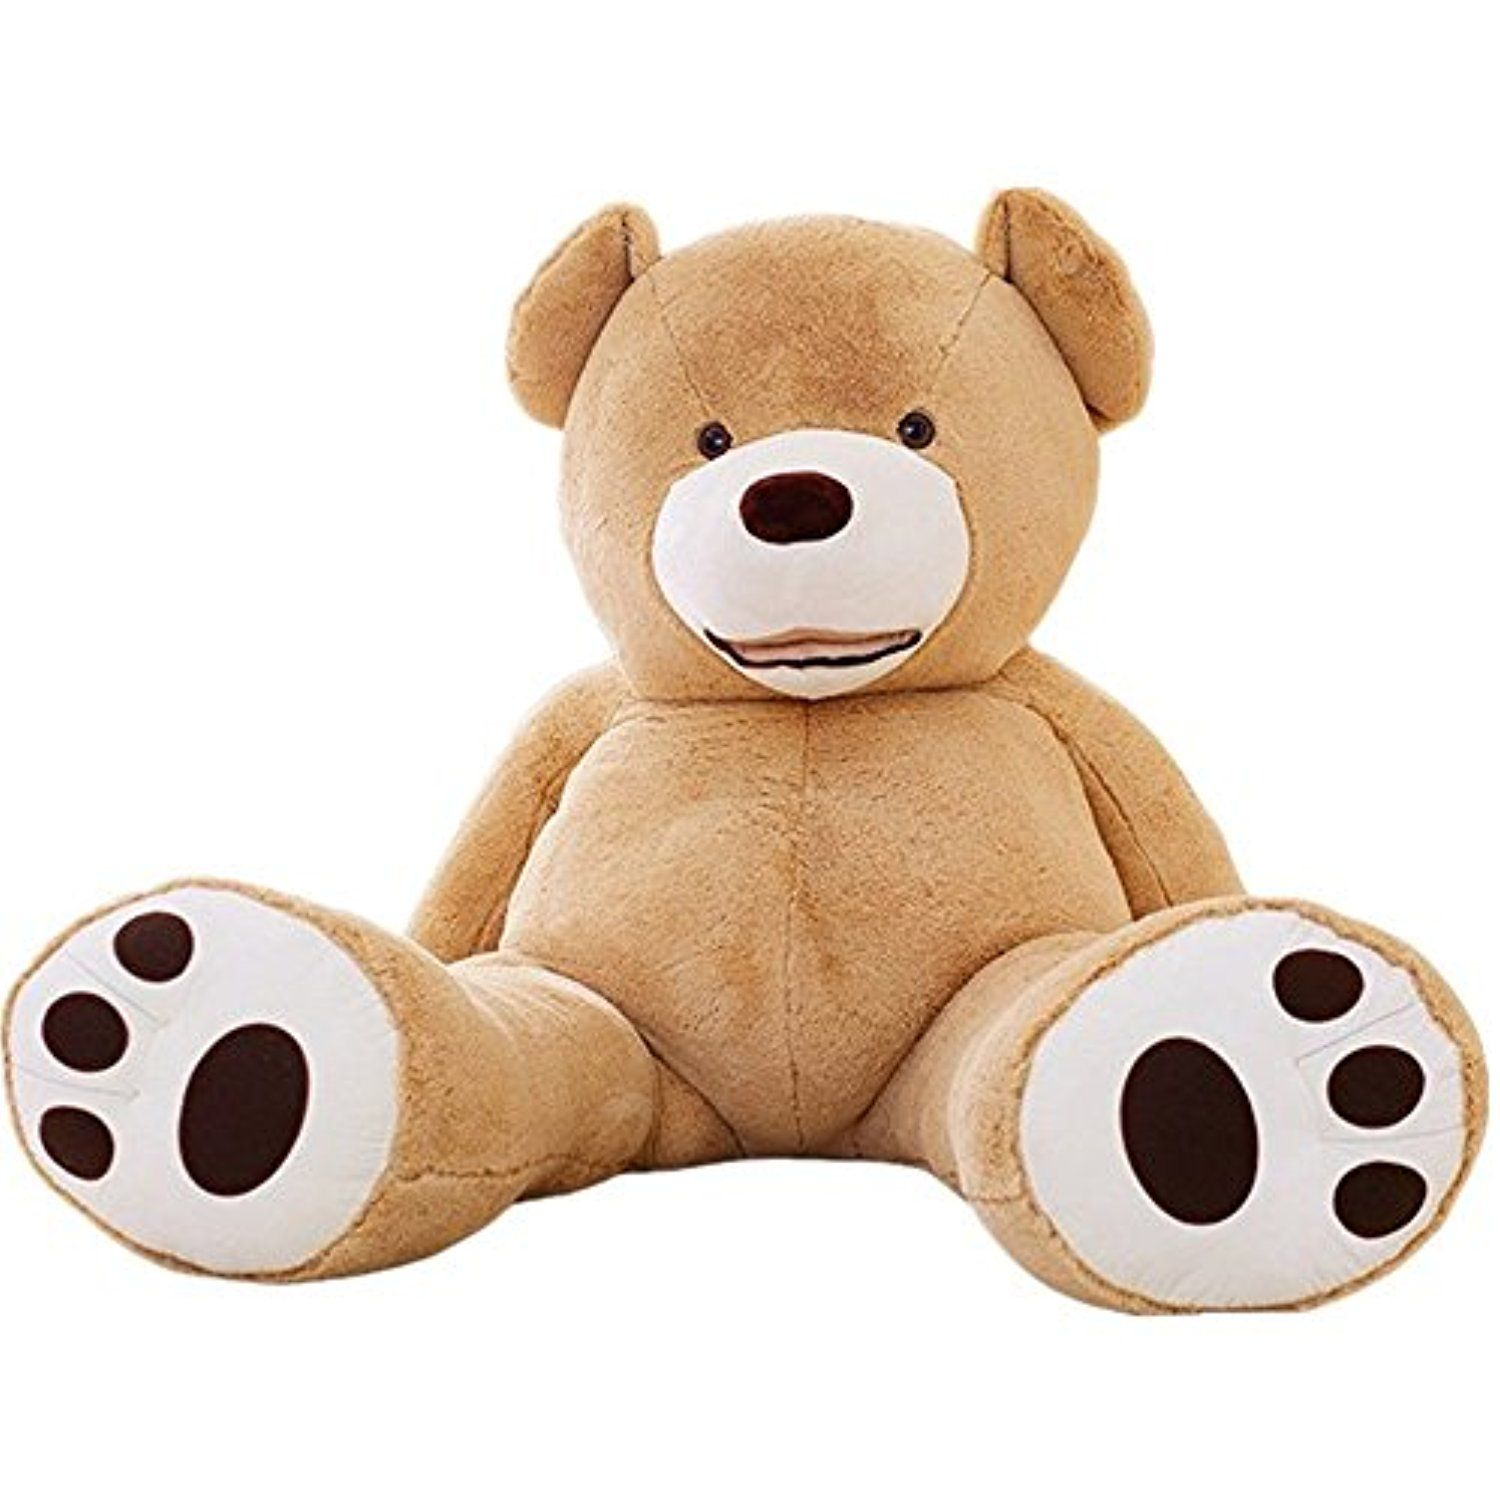 ONLY COVER PLUSH TOY SHELL 79/'/' SUPER HUGE big Teddy bear WITH ZIPPER 200cm